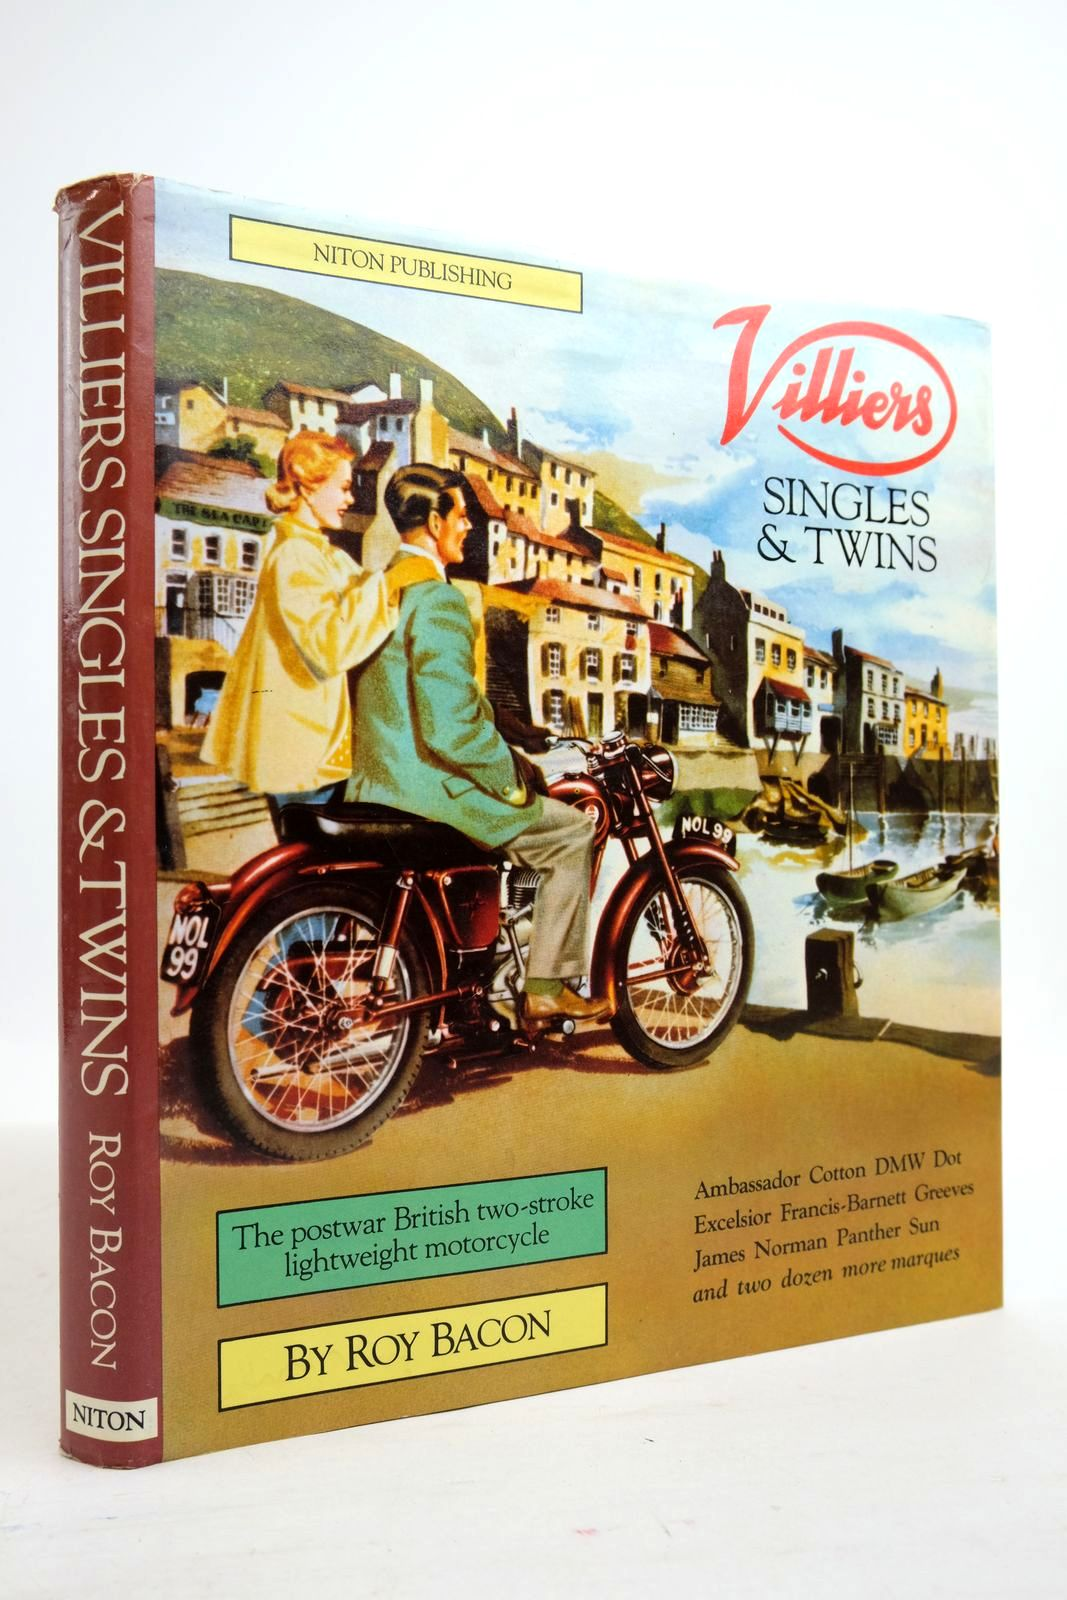 Photo of VILLIERS SINGLES & TWINS written by Bacon, Roy published by Niton Publishing (STOCK CODE: 2134892)  for sale by Stella & Rose's Books